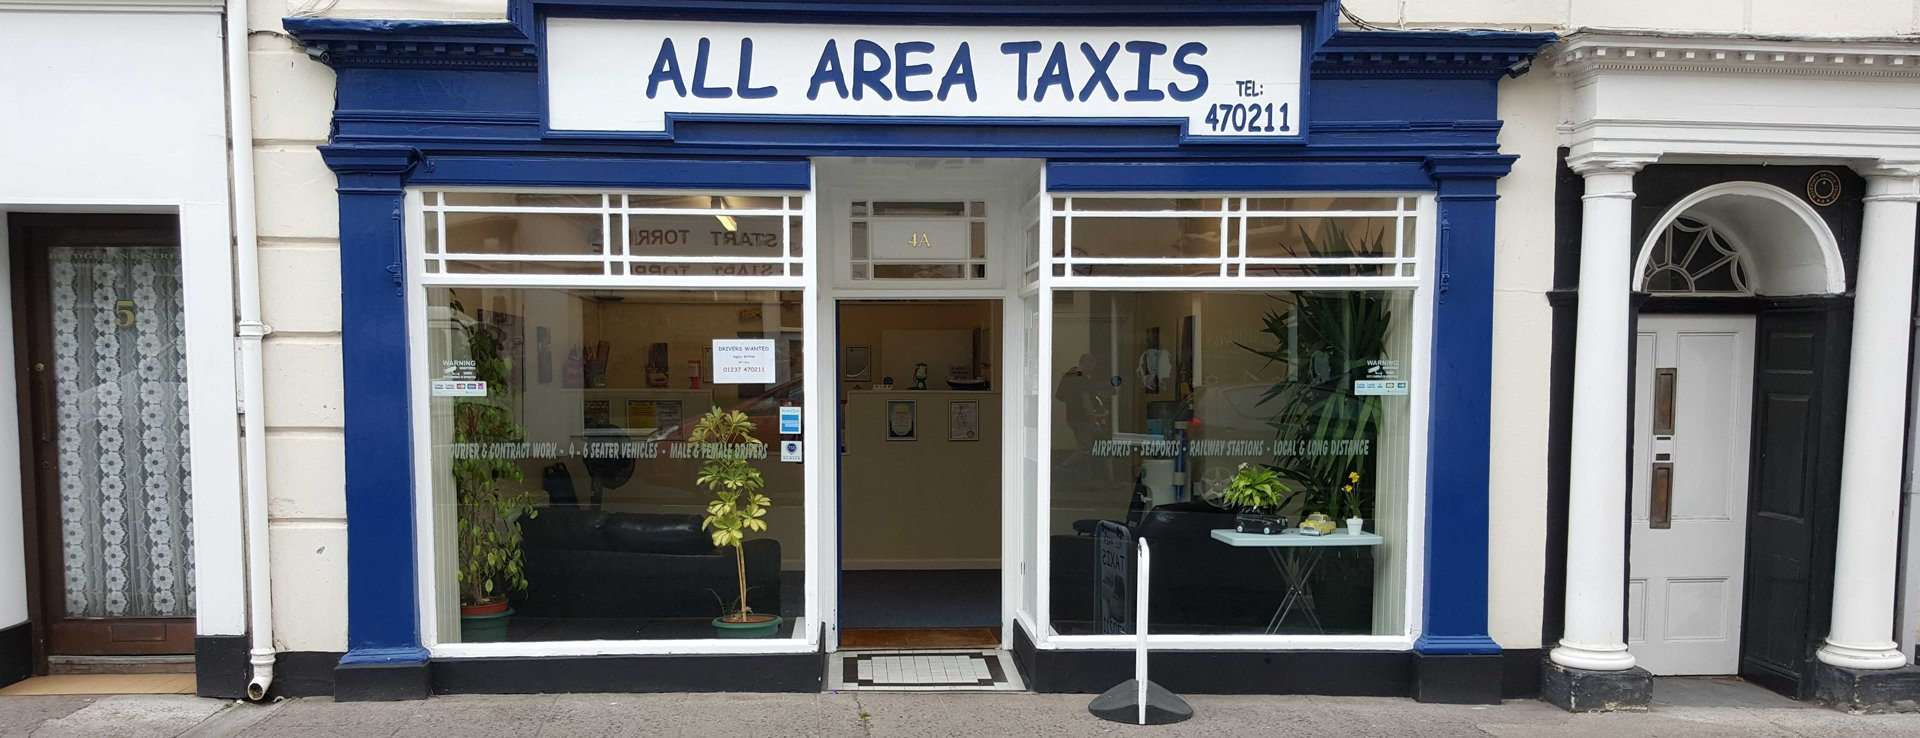 All Area Taxis store